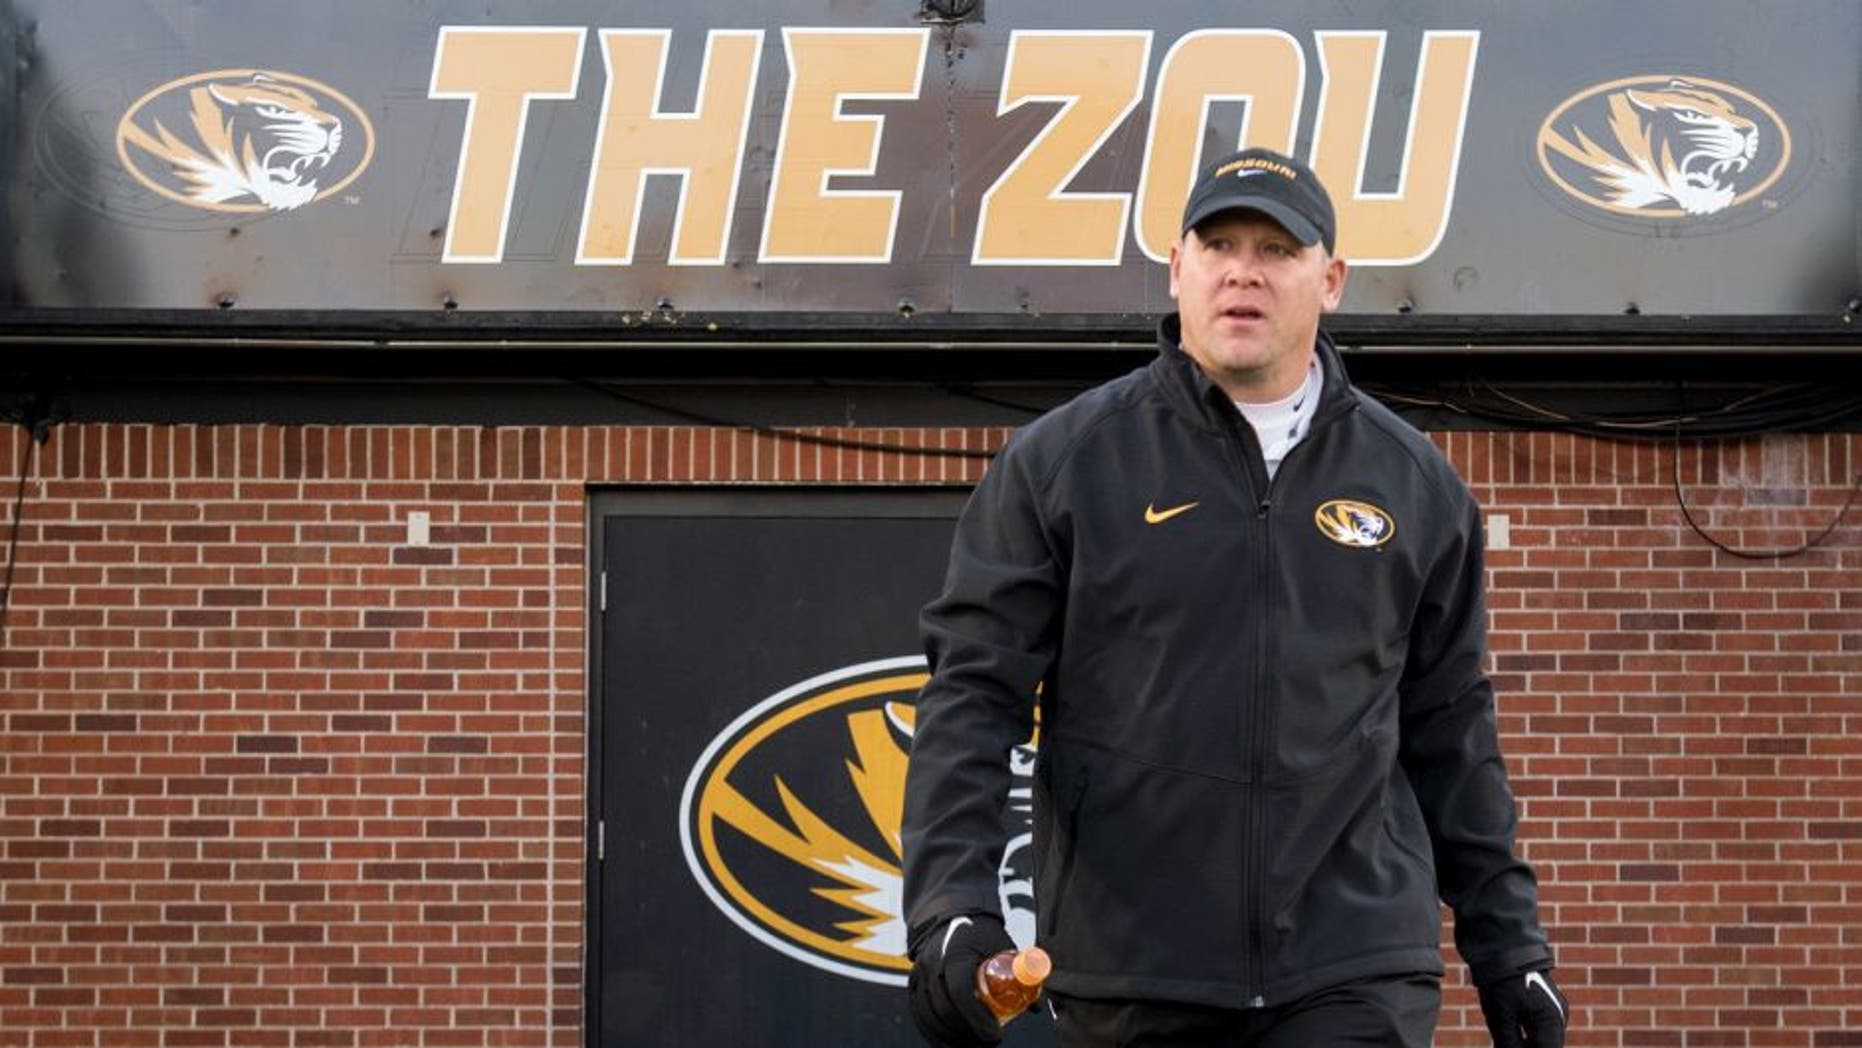 FILE - In this Saturday, Nov. 21, 2015 file photo, Missouri defensive coordinator Barry Odom walks on the field before the start of their NCAA college football game against Tennessee in Columbia, Mo. Missouri has promoted defensive coordinator Barry Odom to replace the retiring Gary Pinkel as head coach. The school said in a release Thursday night, Dec. 3, 2015 that Odom had agreed in principle to a five-year deal that will need to be approved by the school's board of curators next week.(AP Photo/L.G. Patterson, File)